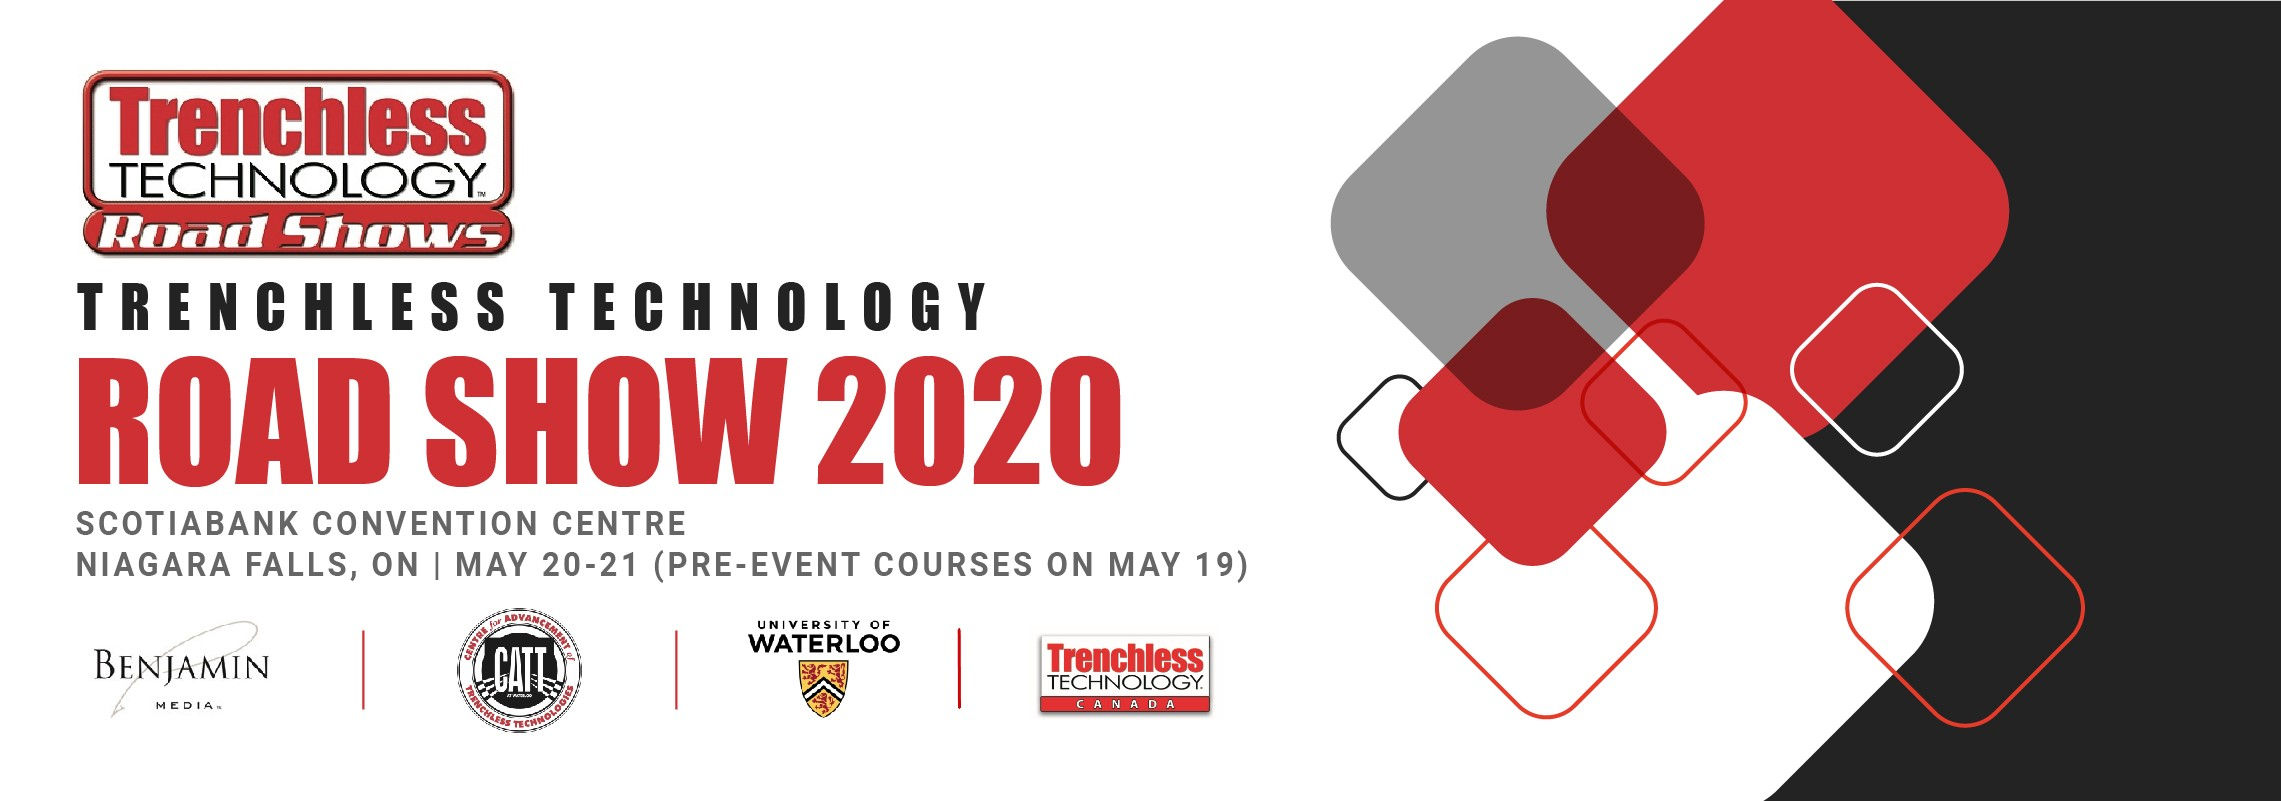 2020 Niagara Falls Trenchless Technology Road Show